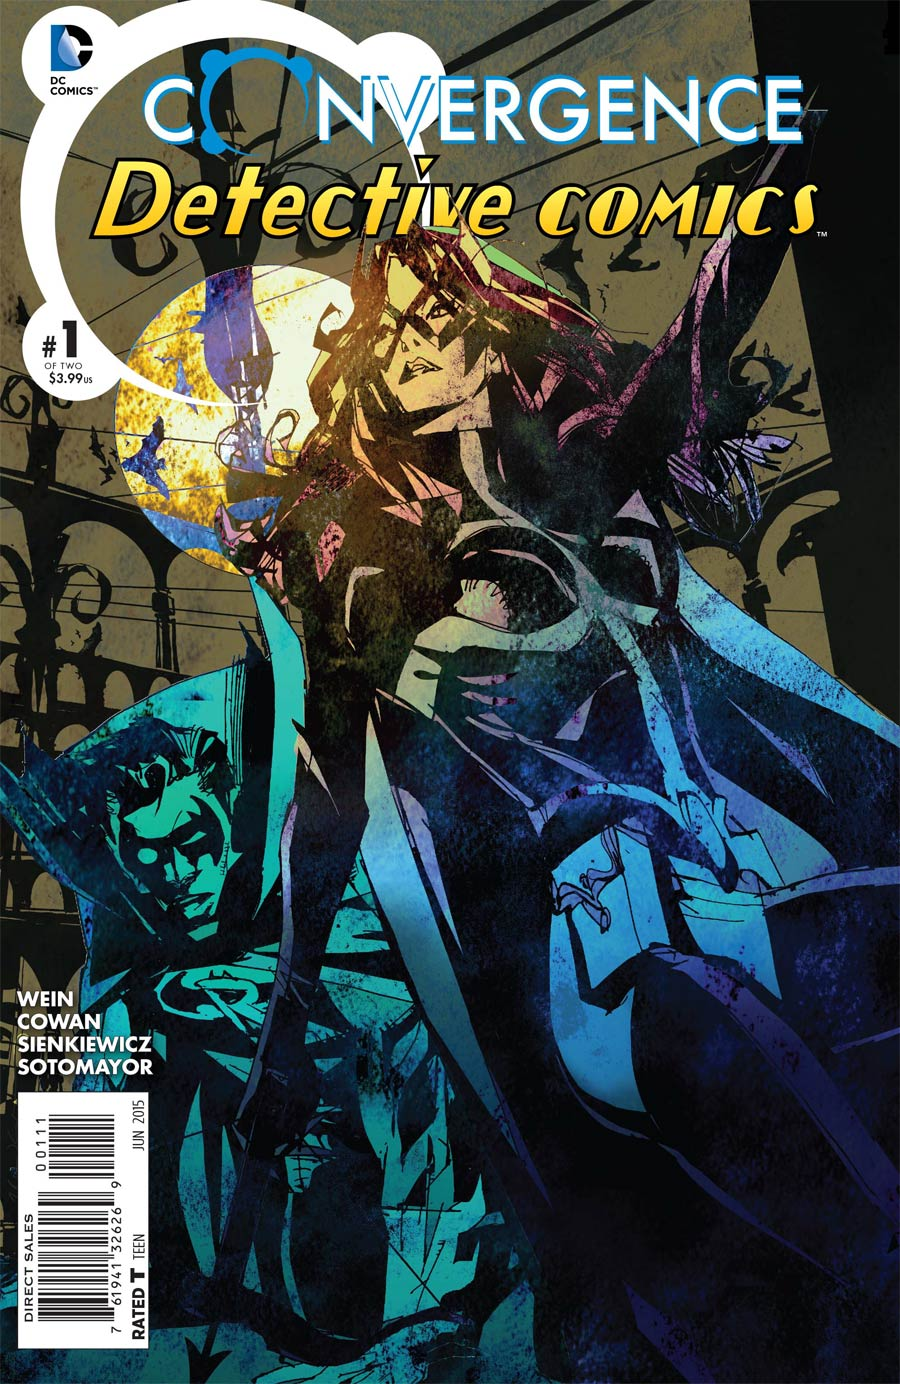 Convergence Detective Comics #1 Cover A Regular Bill Sienkiewicz Cover